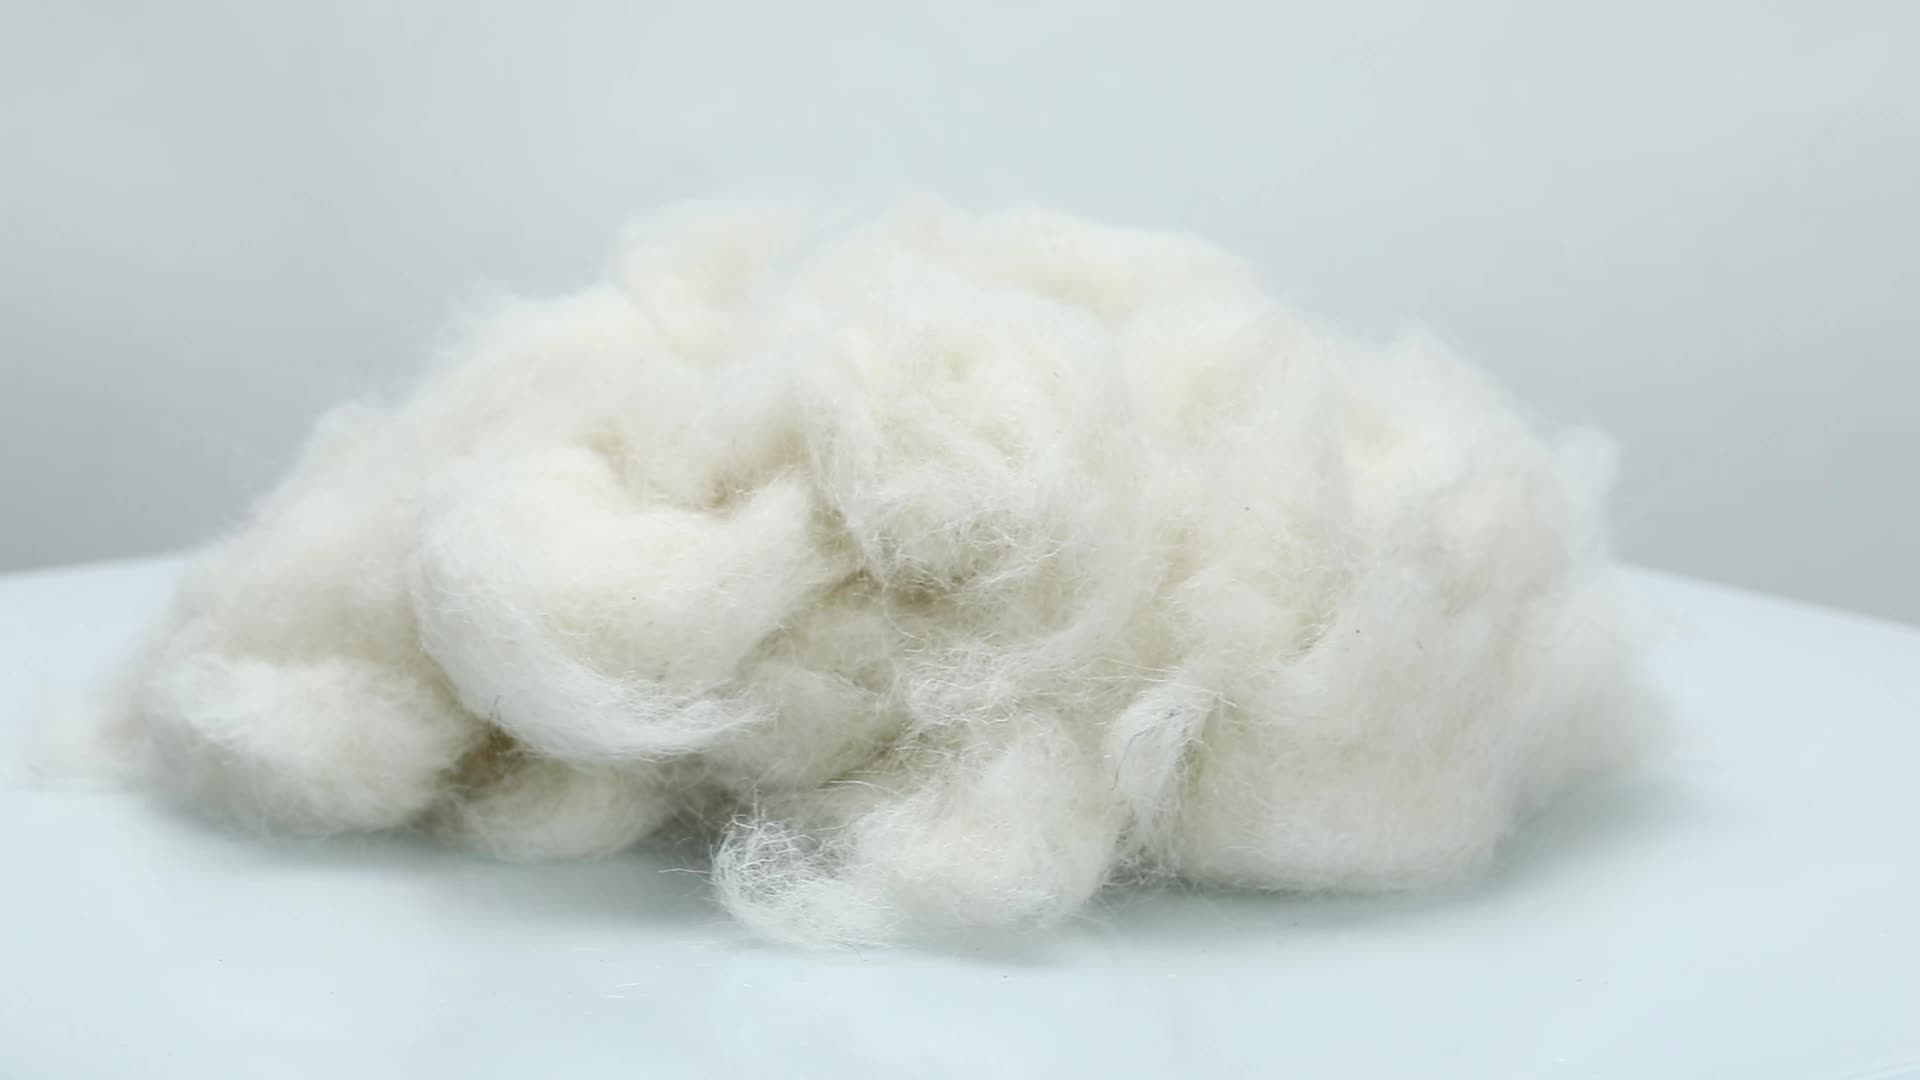 25-26mic, 30-40mm Carded Sheep Wool Waste Wool Noils for Carpet Yarn and Felt